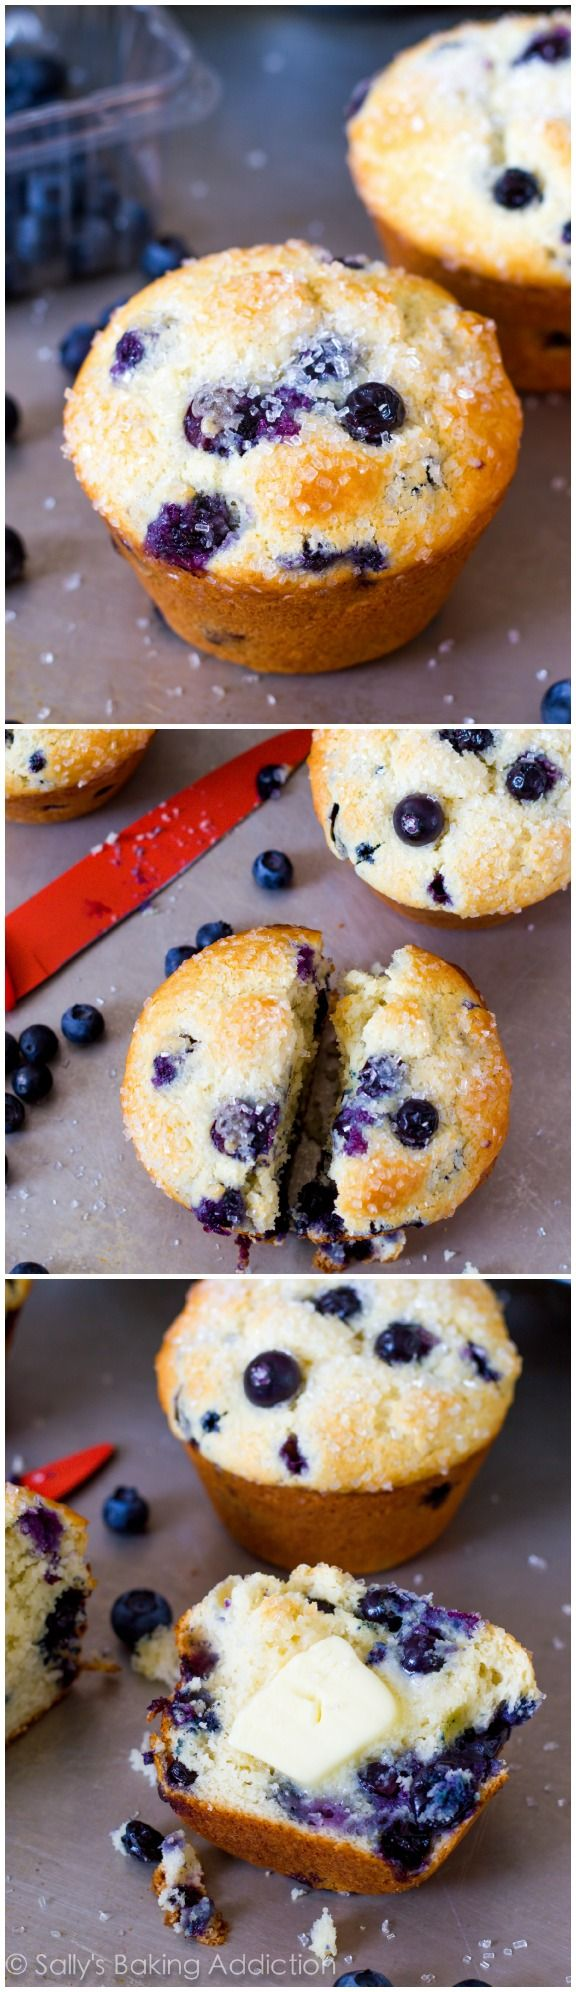 Big, bakery style Blueberry Muffins. My best-ever blueberry muffin recipe is easy to make! @Sally McWilliam McWilliam [Sally's Baking Addiction]